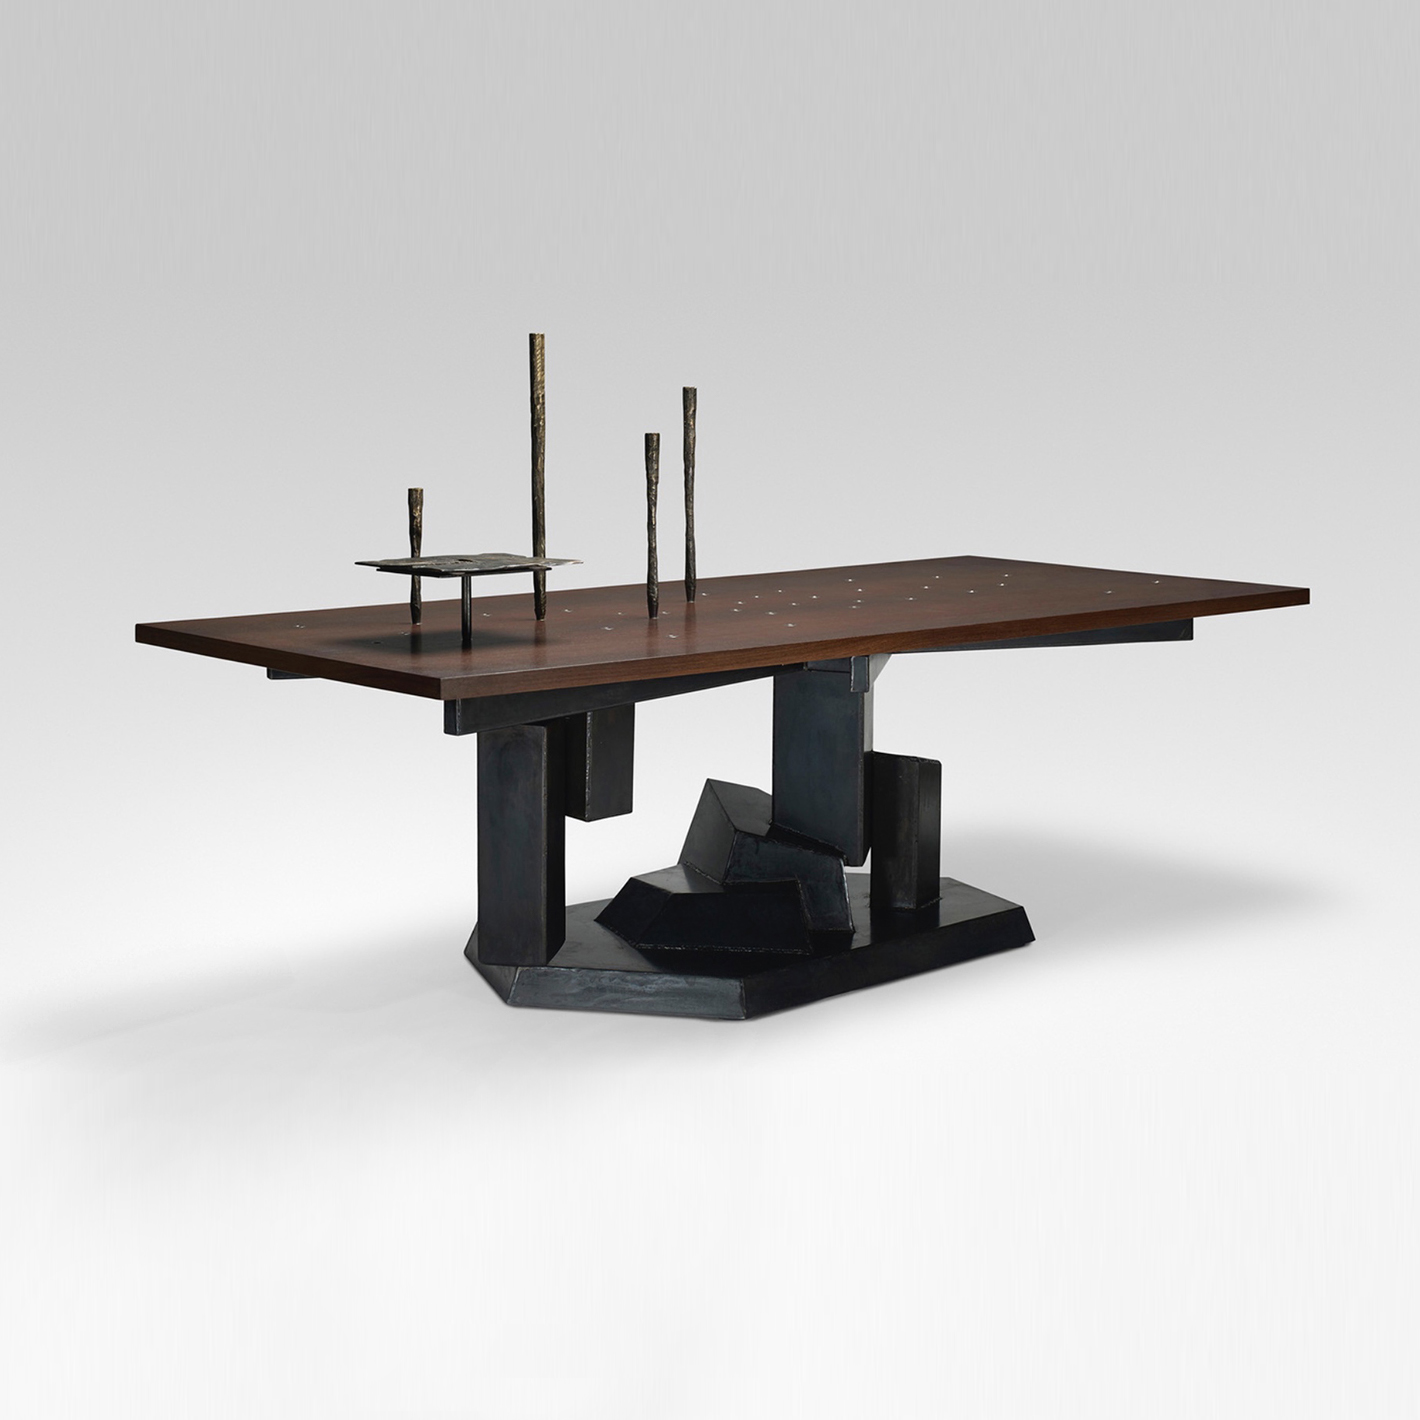 Datum Dining Table by Chuck Moffit